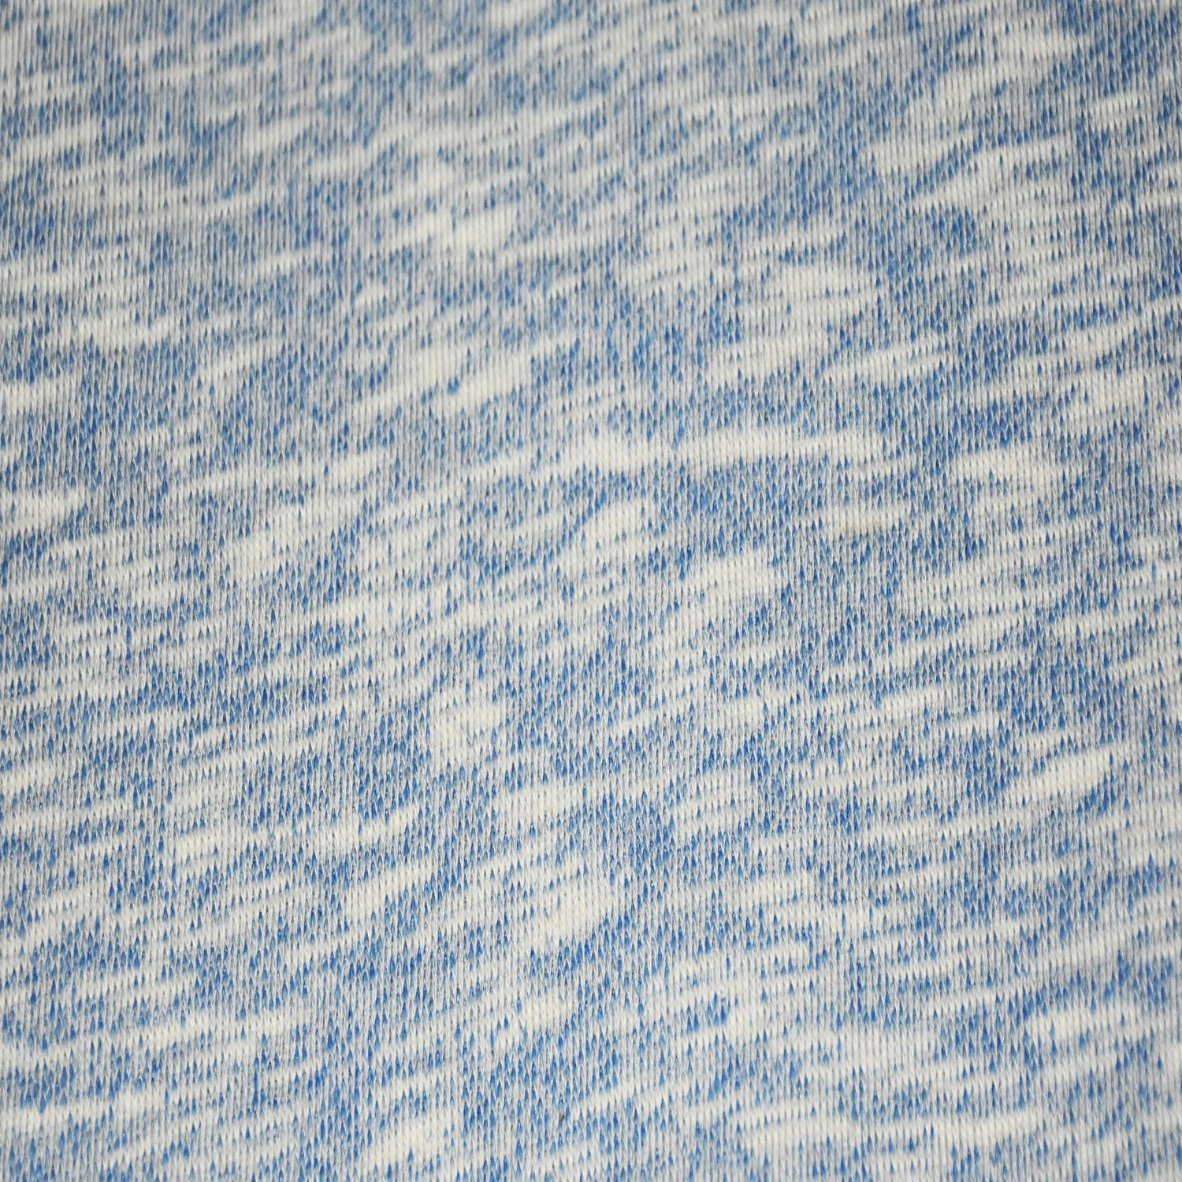 100%Cotton Slub Loop Fabric For Clothing